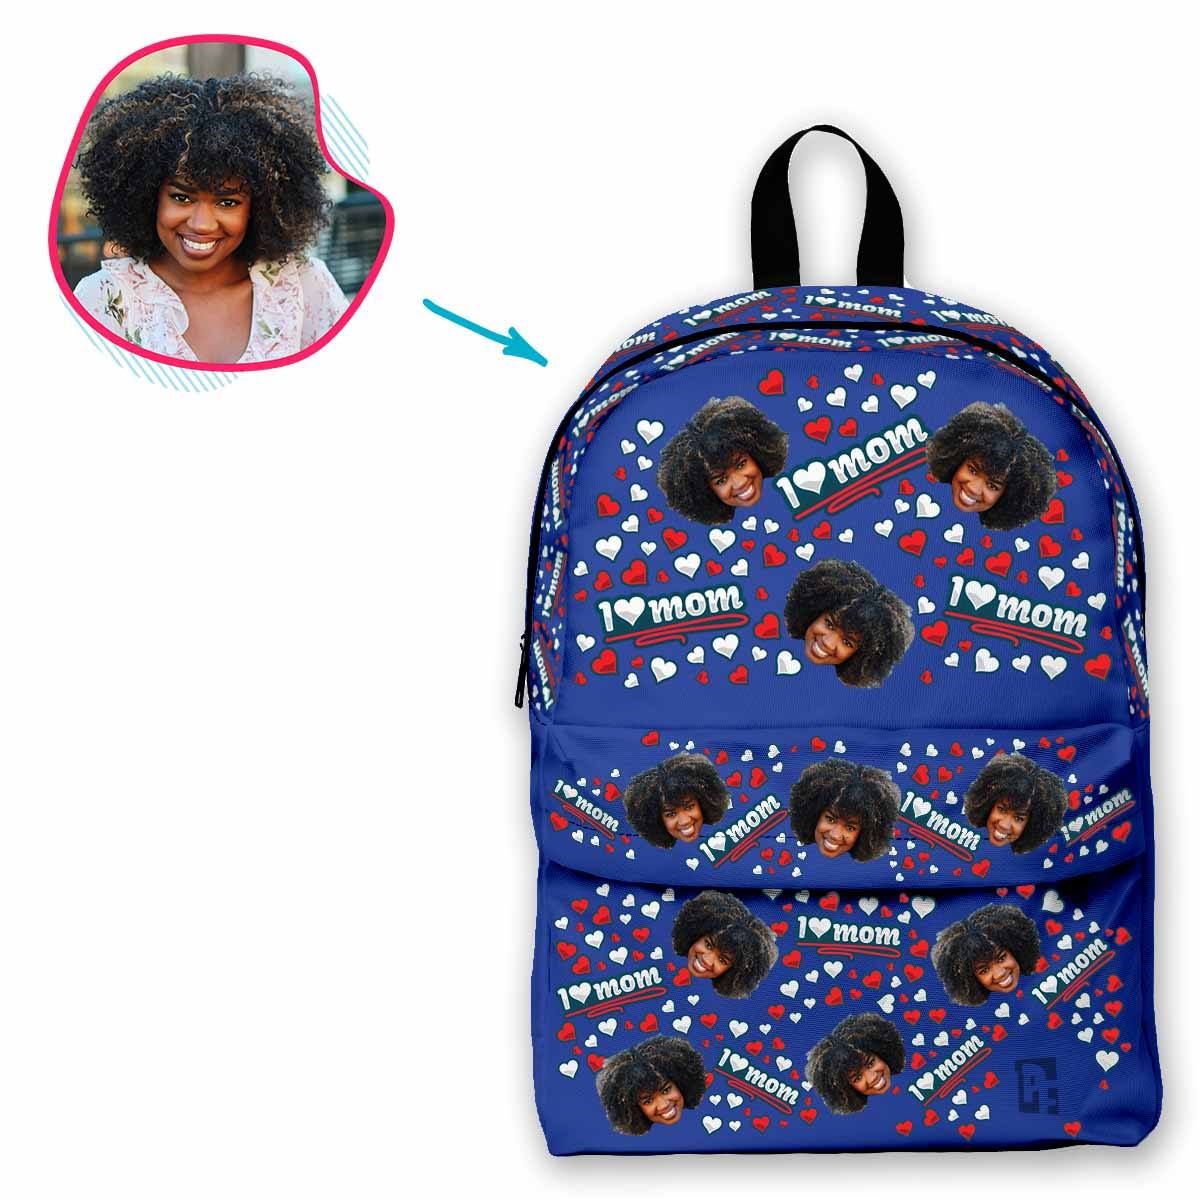 darkblue Love Mom classic backpack personalized with photo of face printed on it